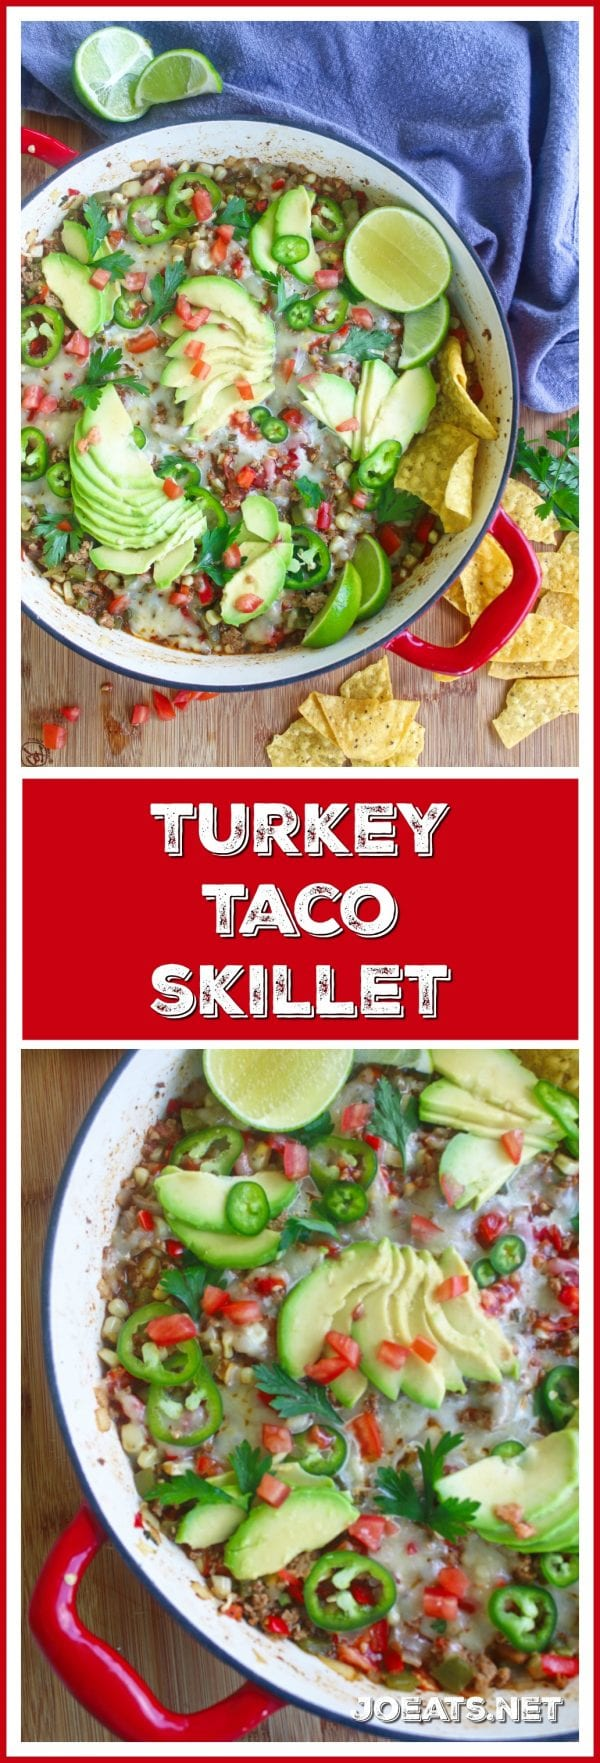 This turkey taco skillet is an easy, weeknight, one pot meal that will definitely make its way into your dinner time rotation! #skillet #weeknightmeal #dinnerrecipe #mexicanfood #funfood #easymeal #easydinner #onepotmeal